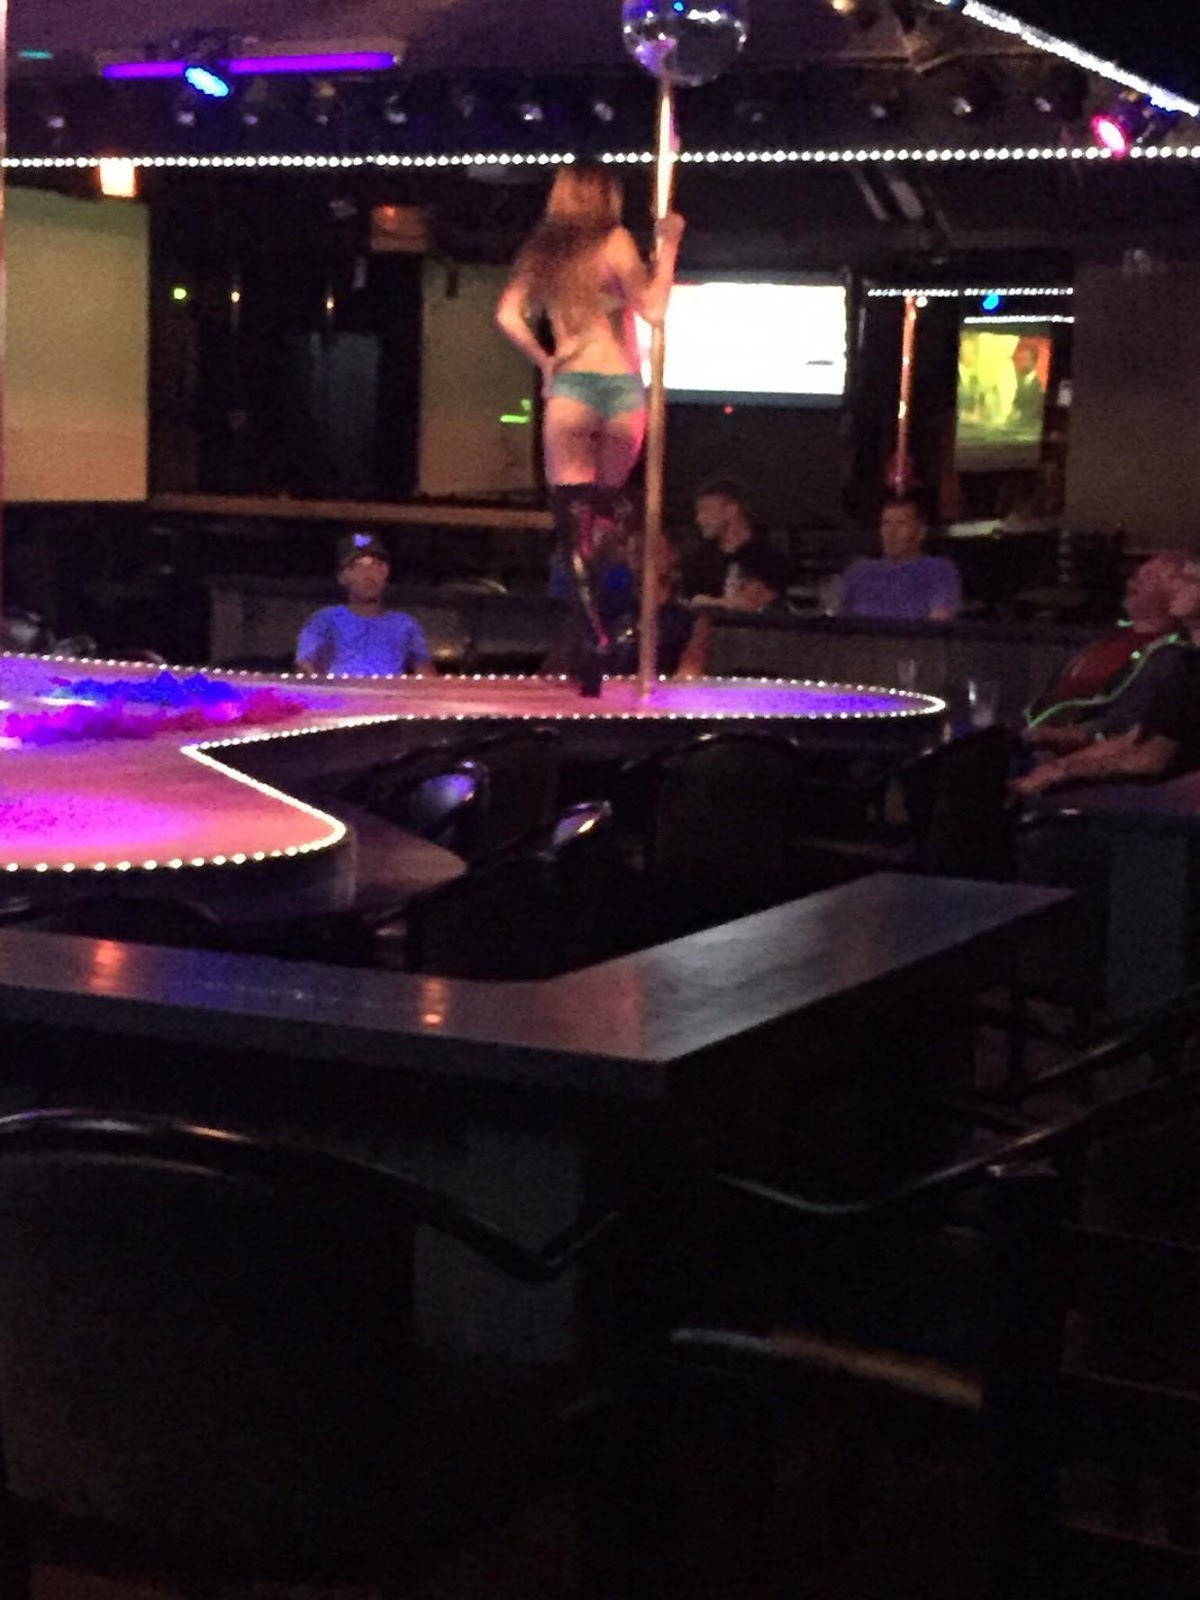 Las Vegas Strip Clubs Faq, Details Upcoming Events